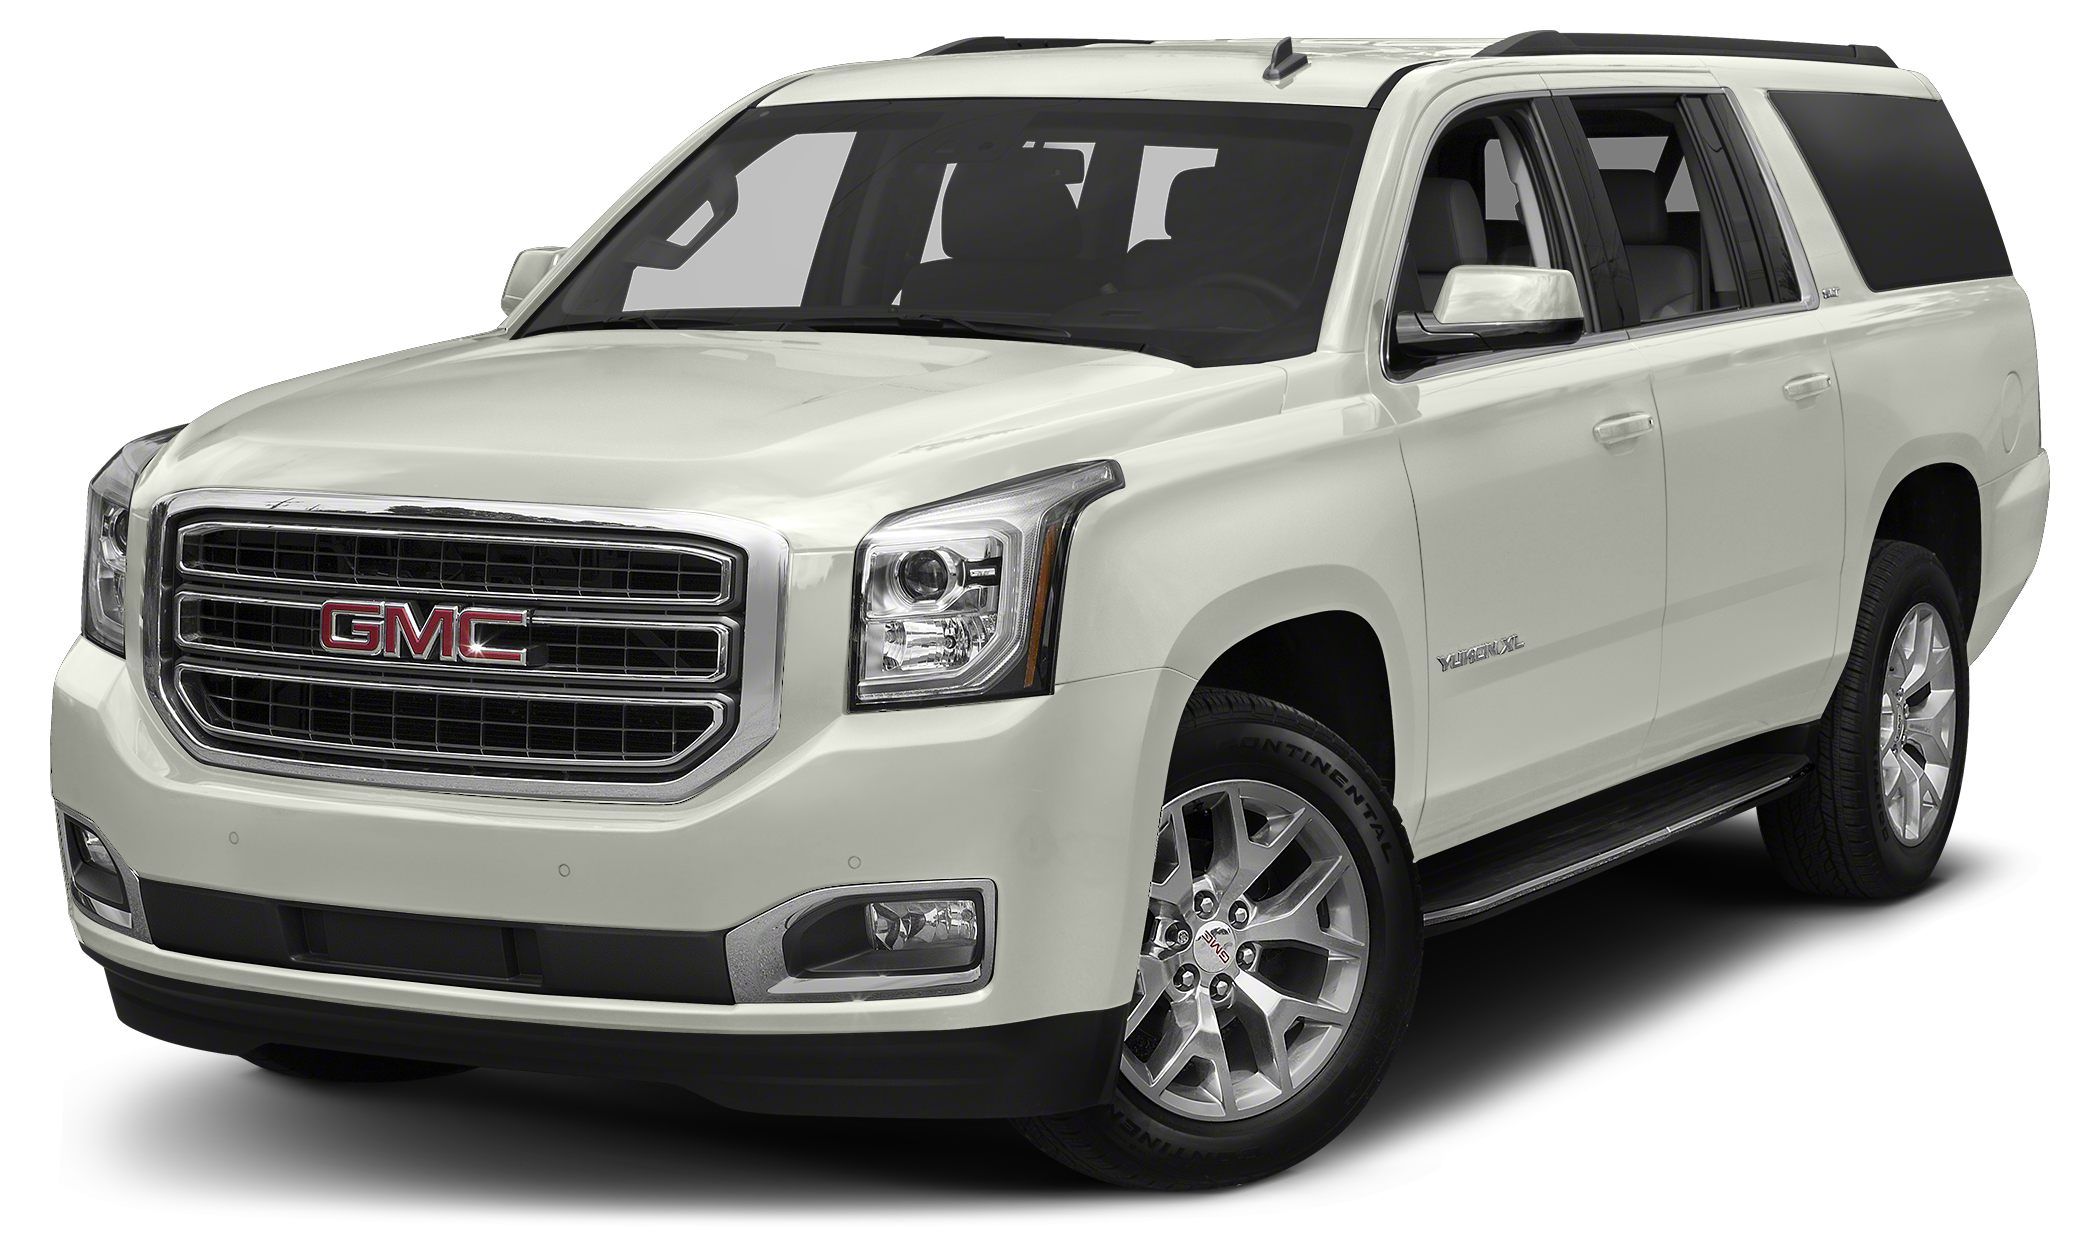 2016 GMC Yukon XL SLT Meet the GMC Yukon Its spacious interior offers three rows of seating that